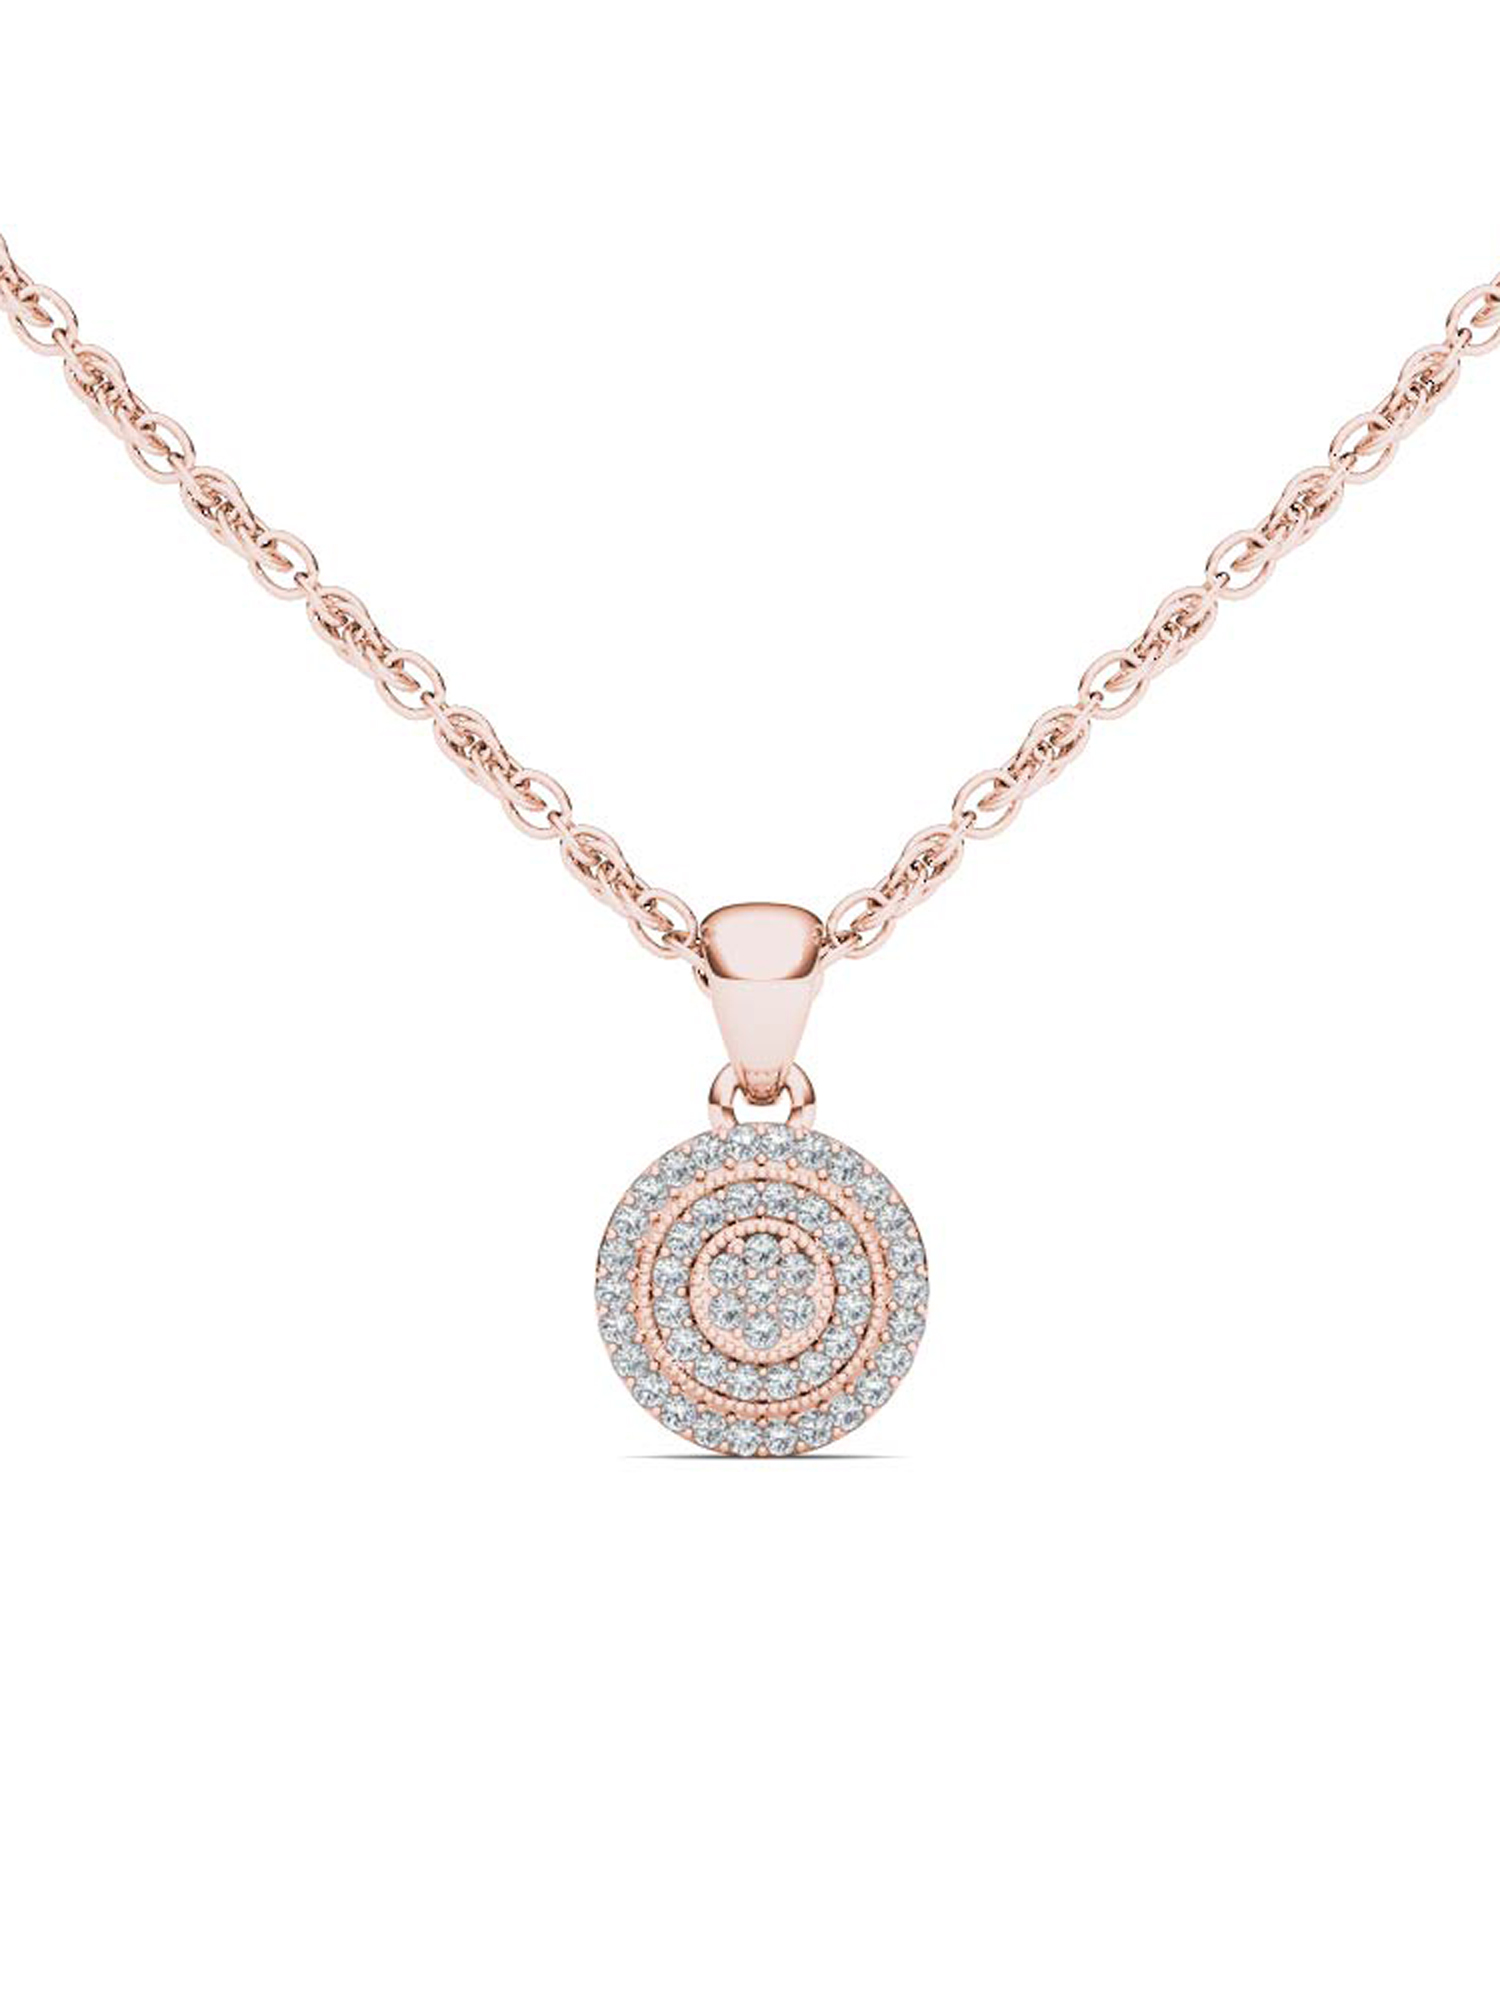 Imperial 1 8Ct TDW 10K Rose Gold Diamond Halo Necklace by Imperial Jewels